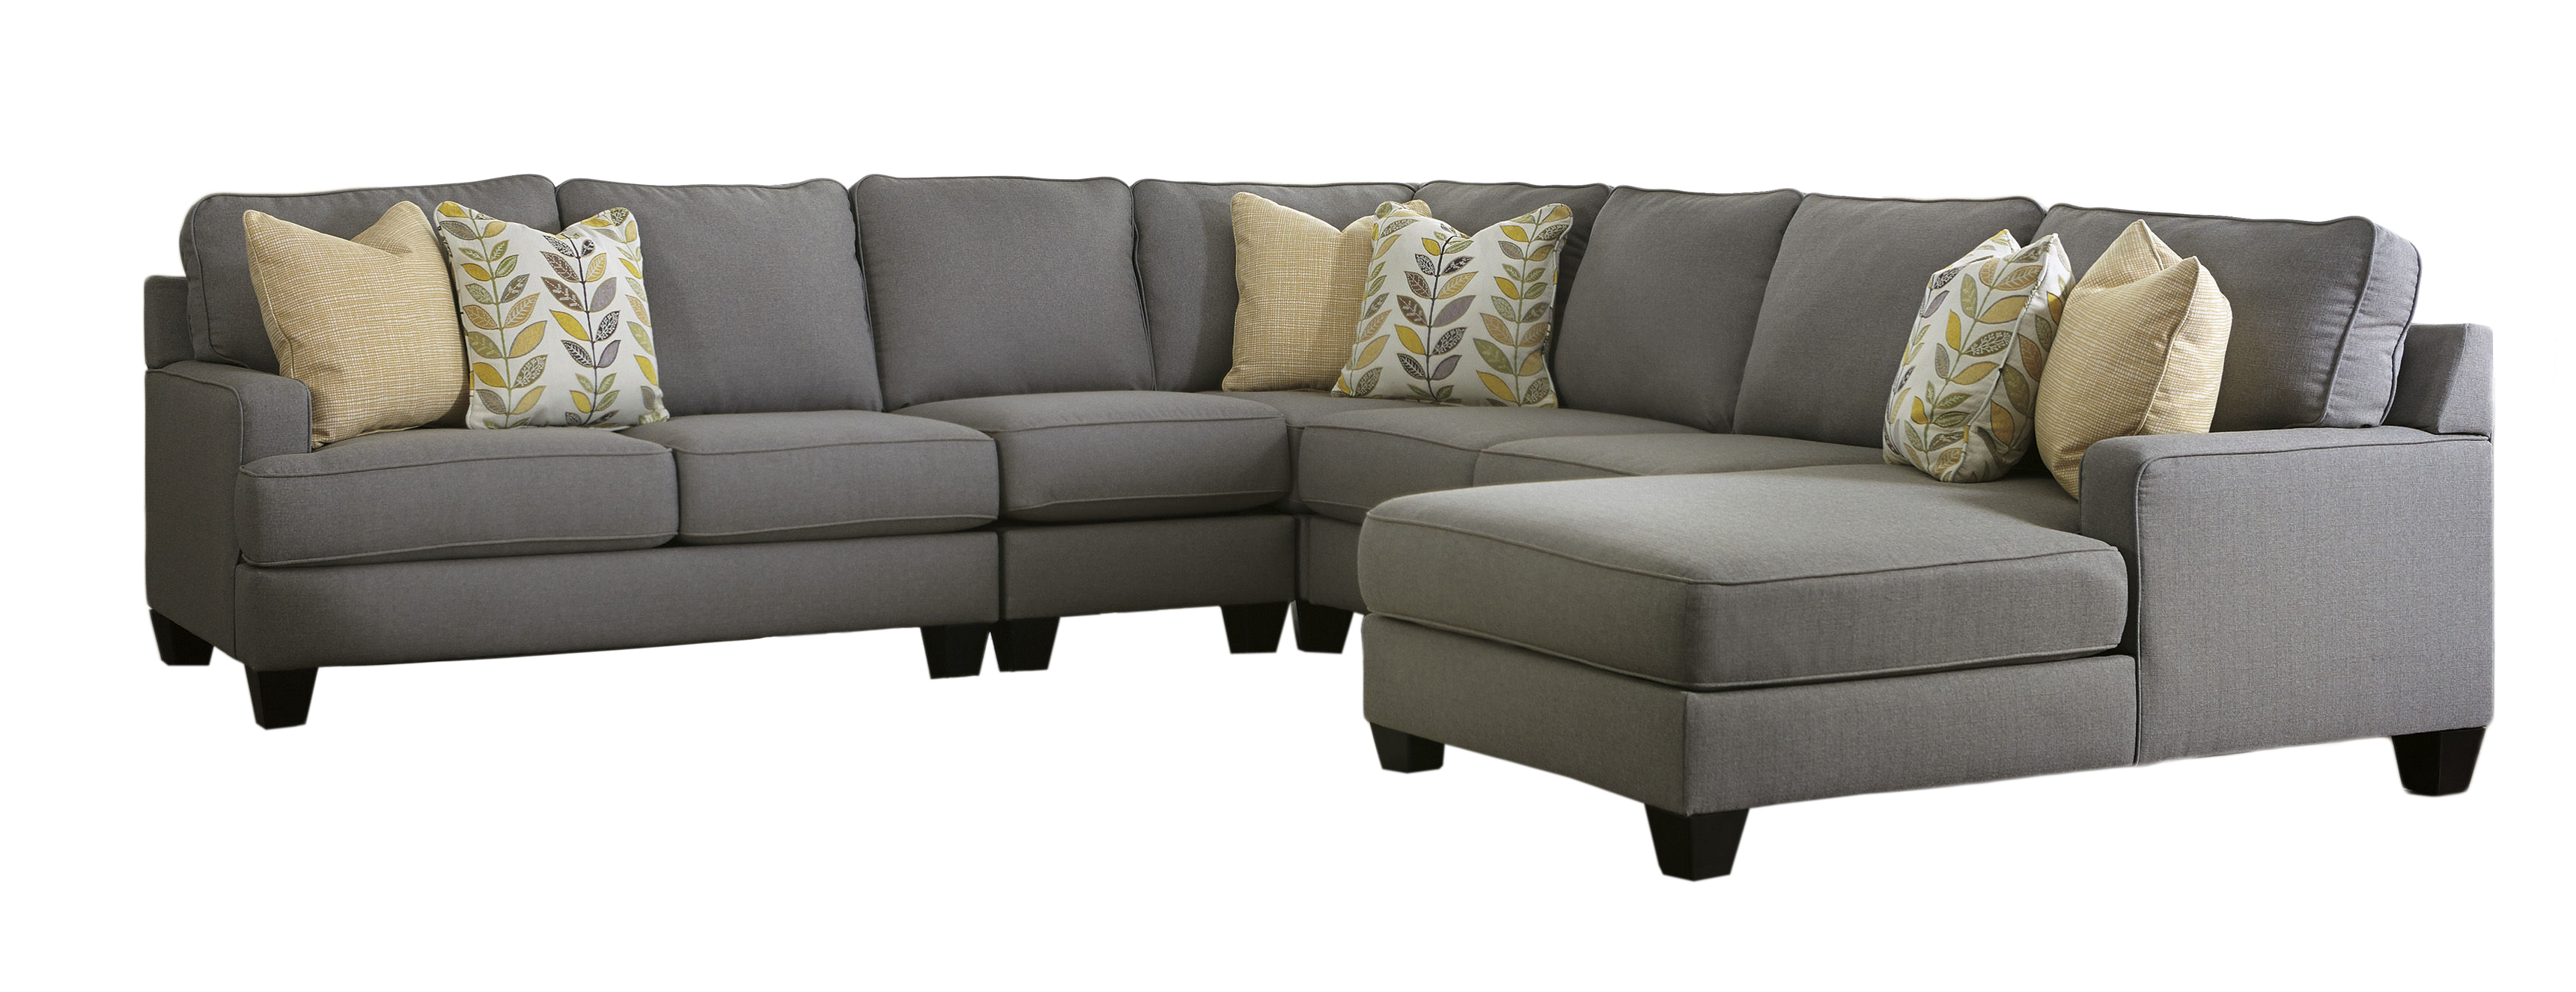 Ashley Furniture Chamberly Alloy Raf Chaise 5pc Sectional The Classy Home